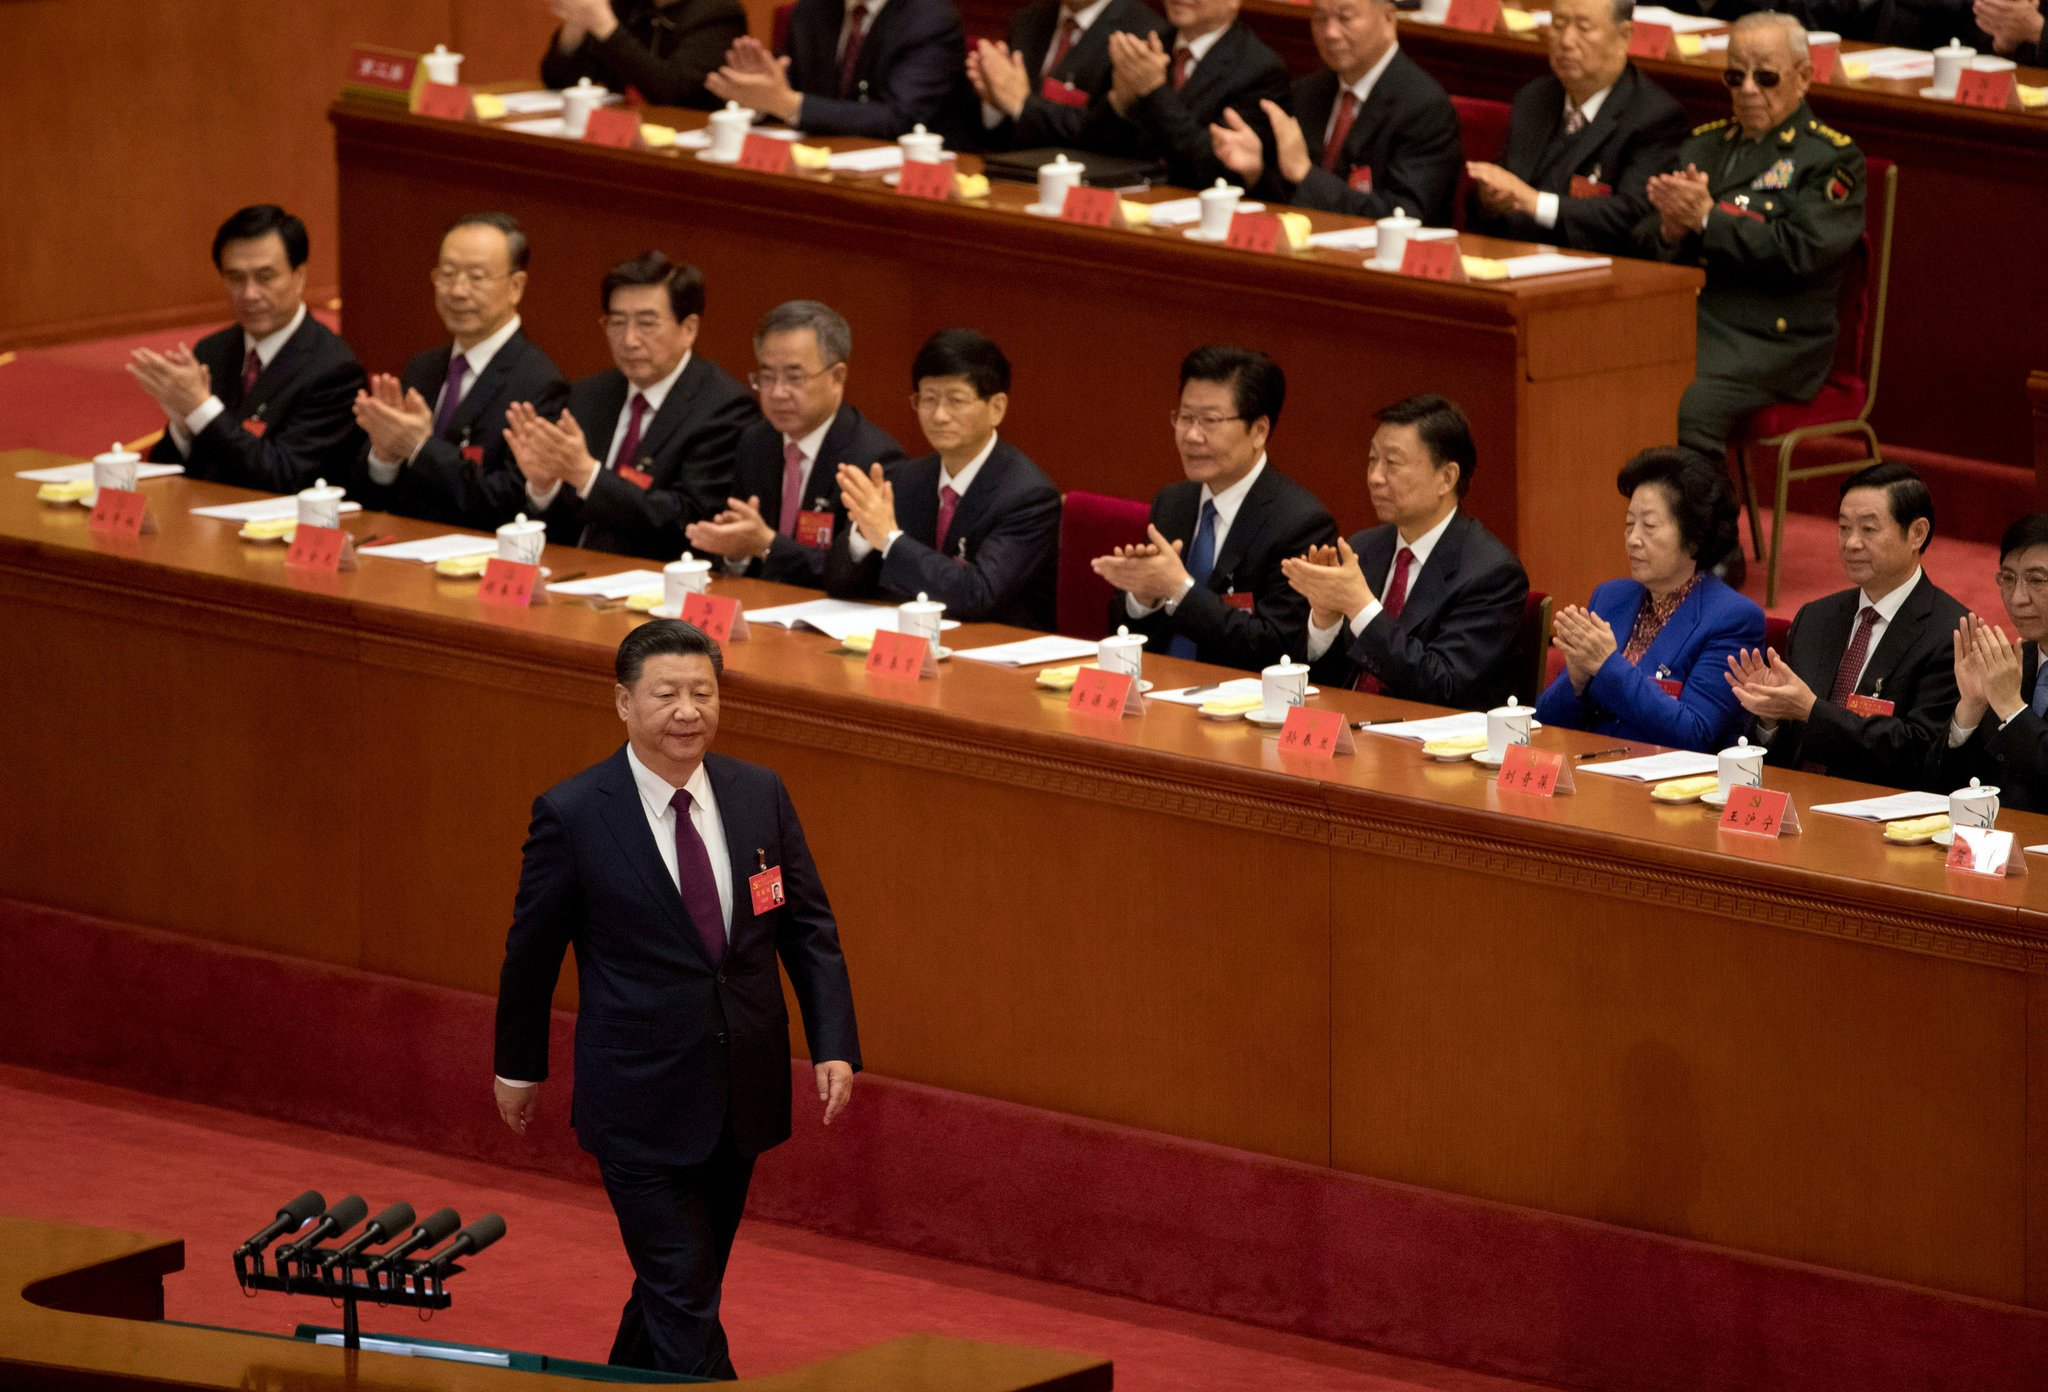 President Xi Jinping arriving for his speech at the opening of the 19th National Congress of the Chinese Communist Party, held at the Great Hall of the People in Beijing. (Photo courtesy: NYT)